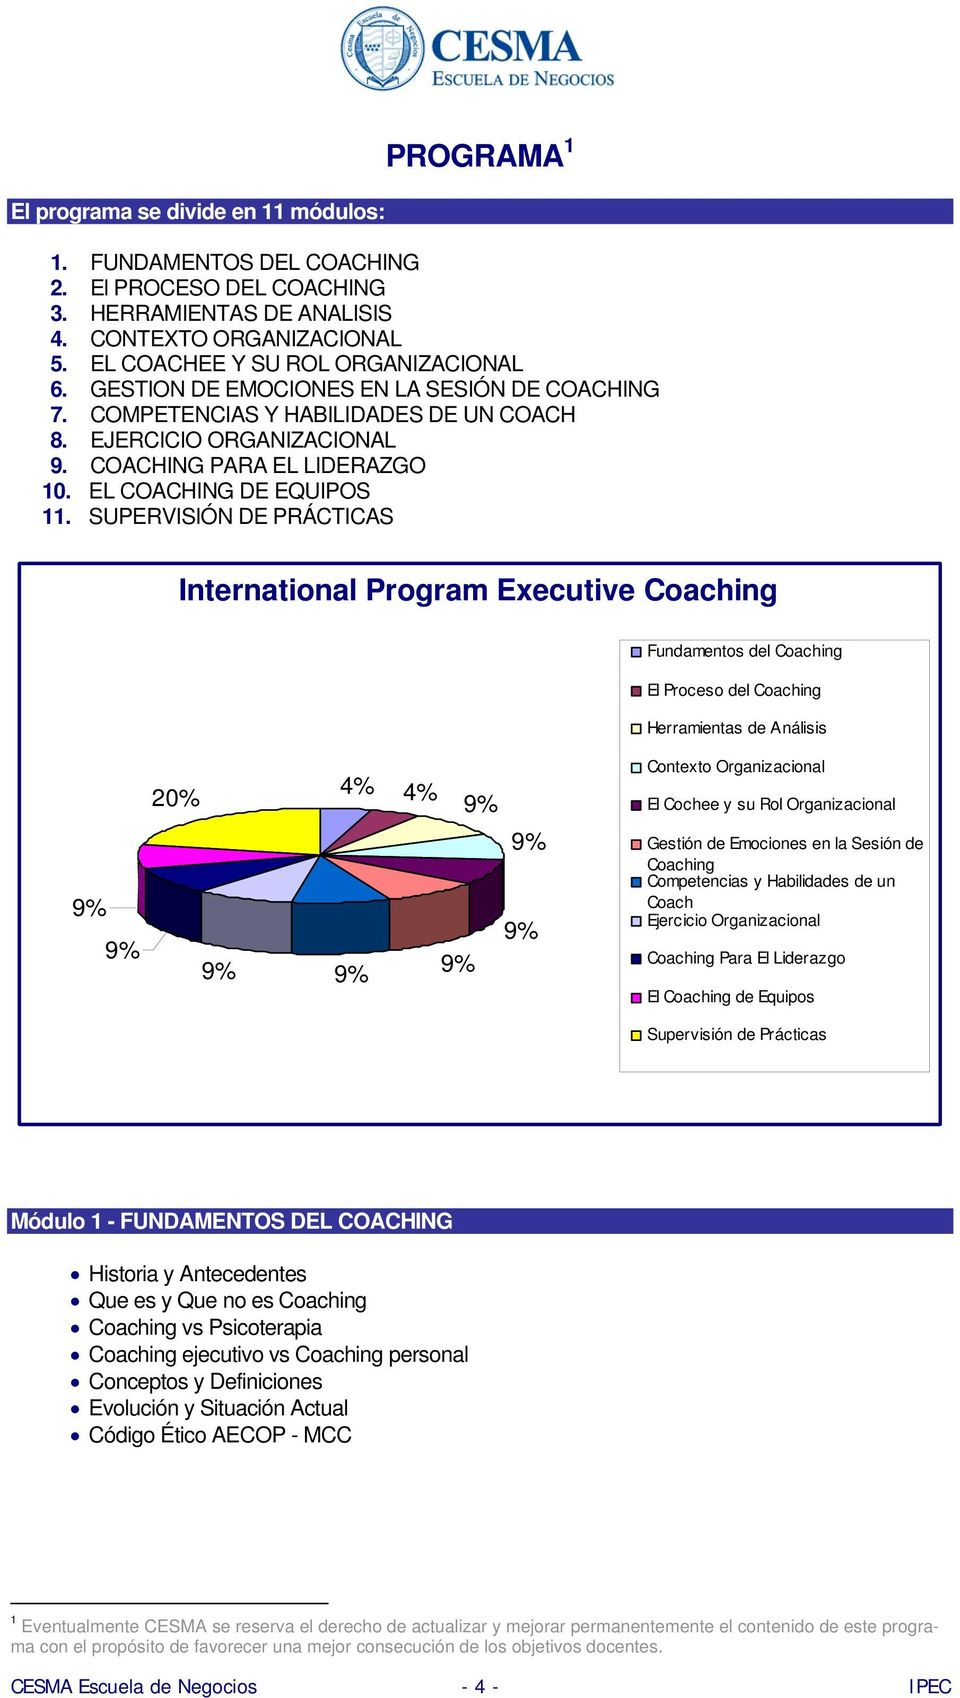 SUPERVISIÓN DE PRÁCTICAS International Program Executive Coaching Fundamentos del Coaching El Proceso del Coaching Herramientas de Análisis 20% 4% 4% 9% Contexto Organizacional El Cochee y su Rol